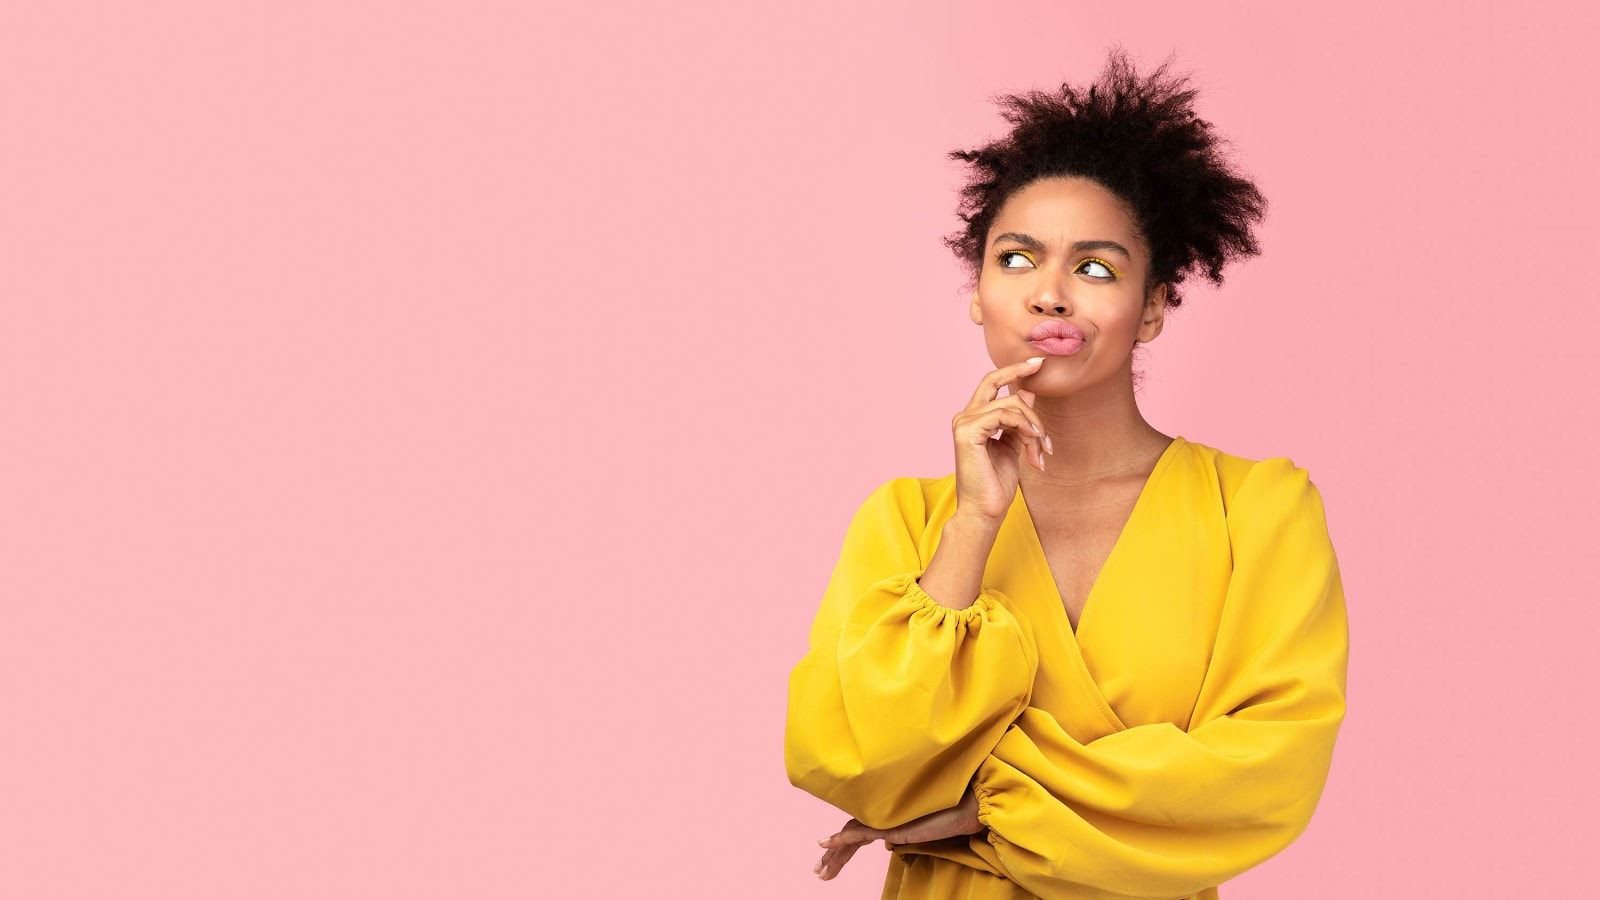 What is a per diem: Woman with a quizzical look on her face